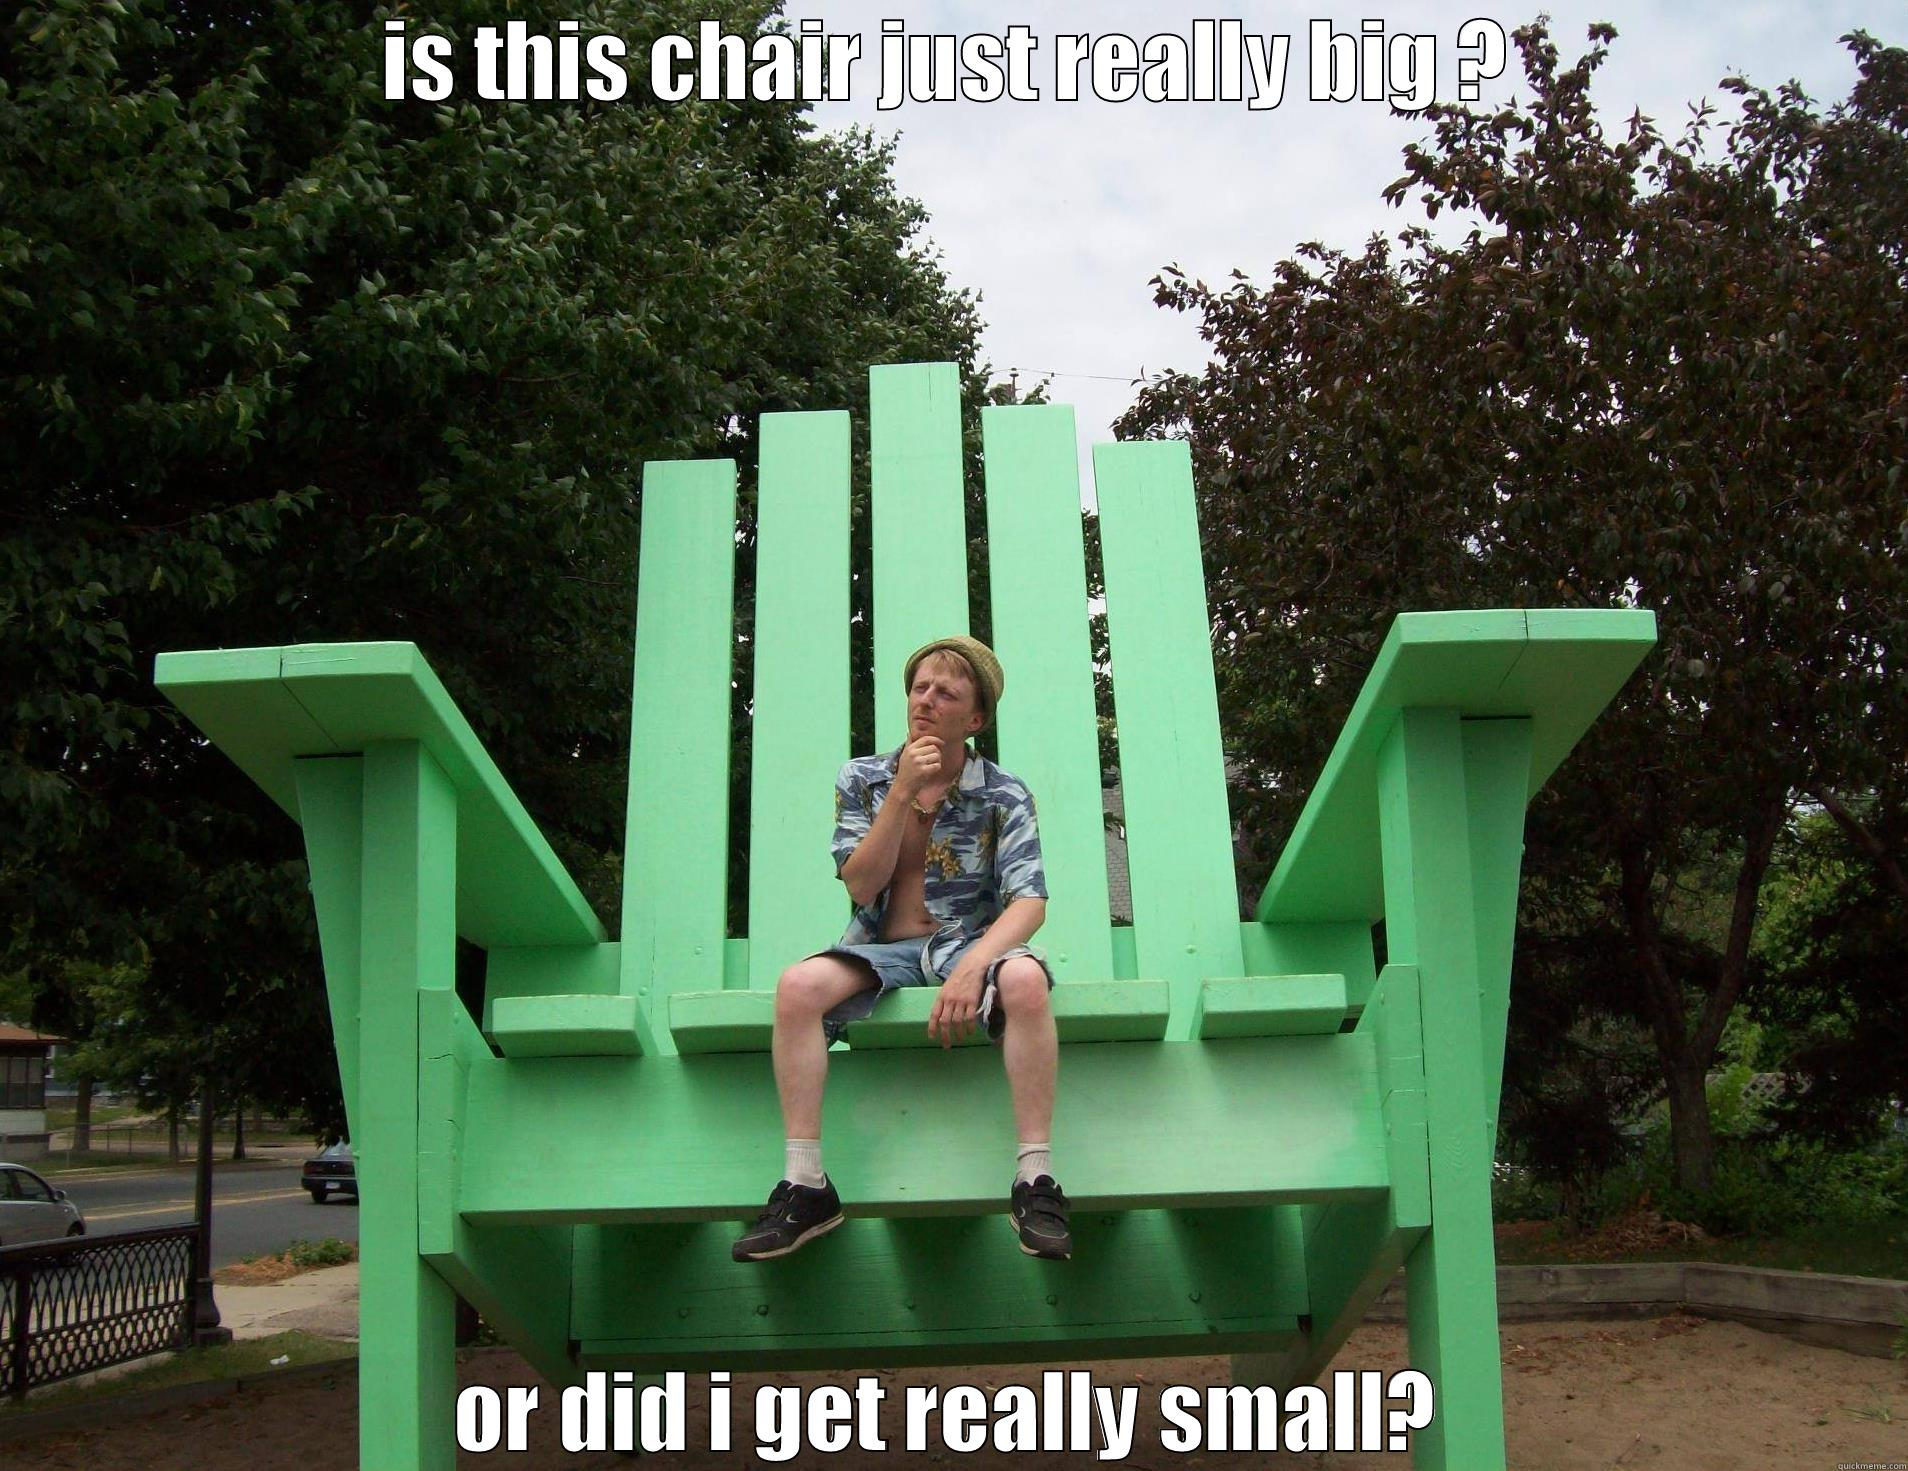 big man chairs personalized for toddlers little chair quickmeme is this just really or did i get